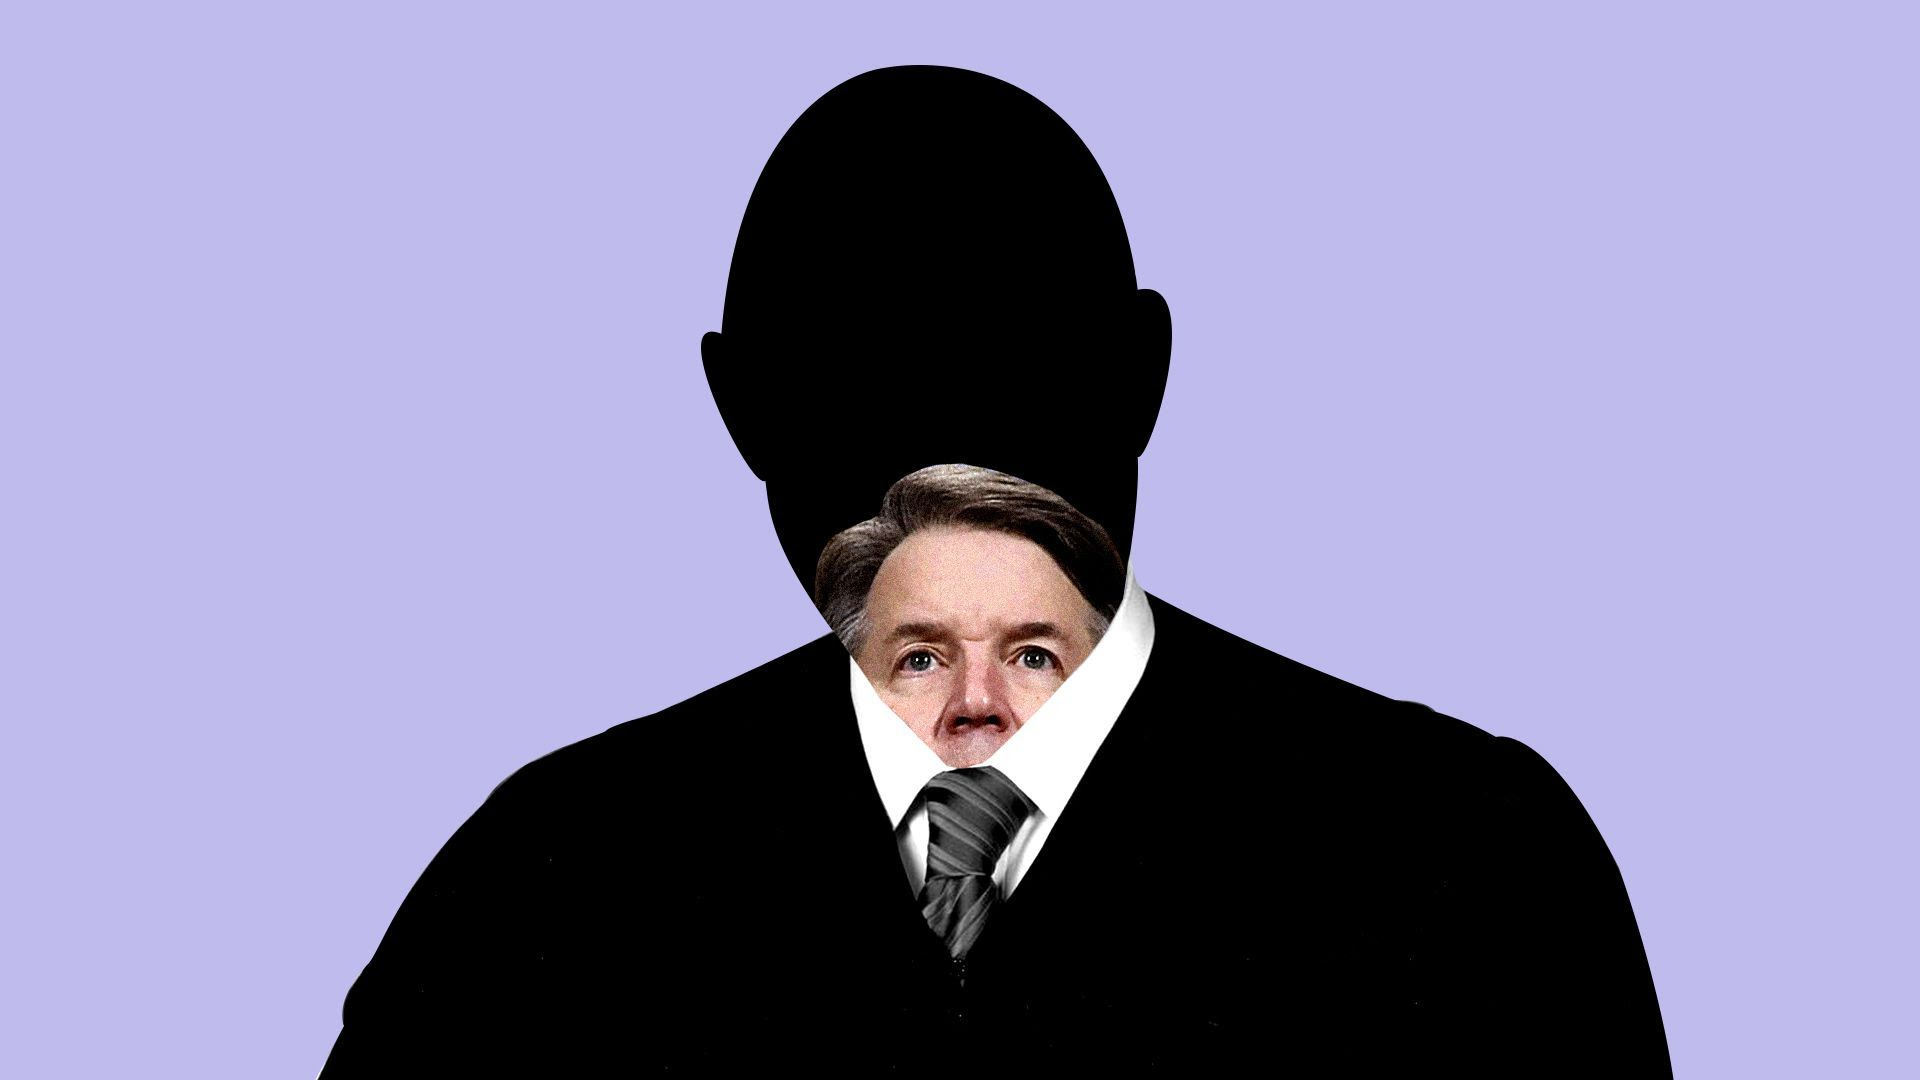 An illustration of a man's silhouette with Kavanaugh's head shrinking in it